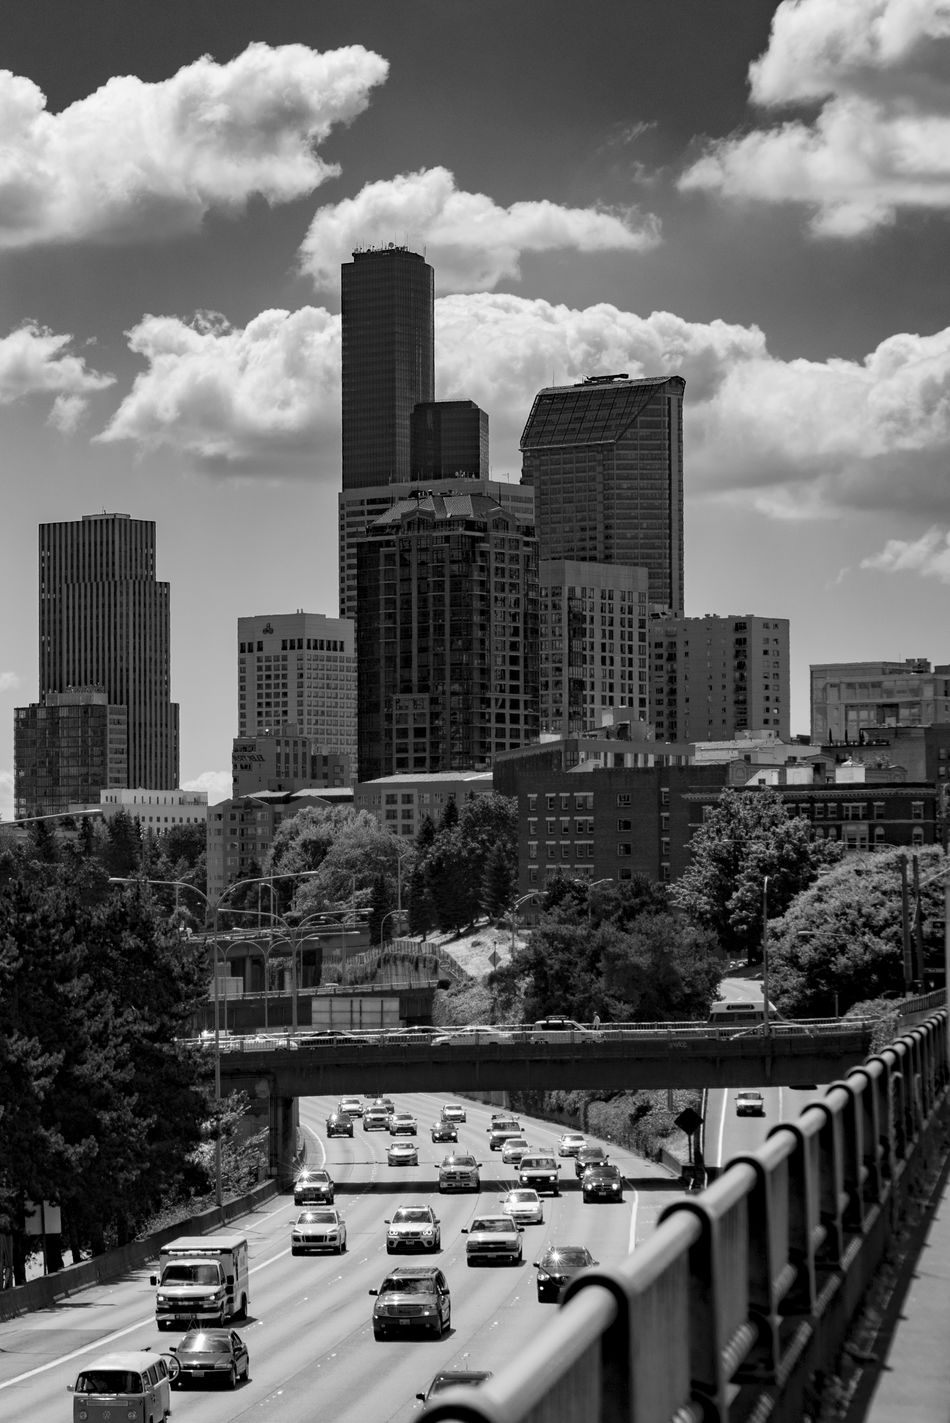 Black and white Seattle Washington with highway traffic. Architecture Building Exterior Built Structure Car City Cityscape Cloud - Sky Day Land Vehicle Modern No People Outdoors Sky Skyscraper Transportation Travel Destinations Tree Urban Skyline